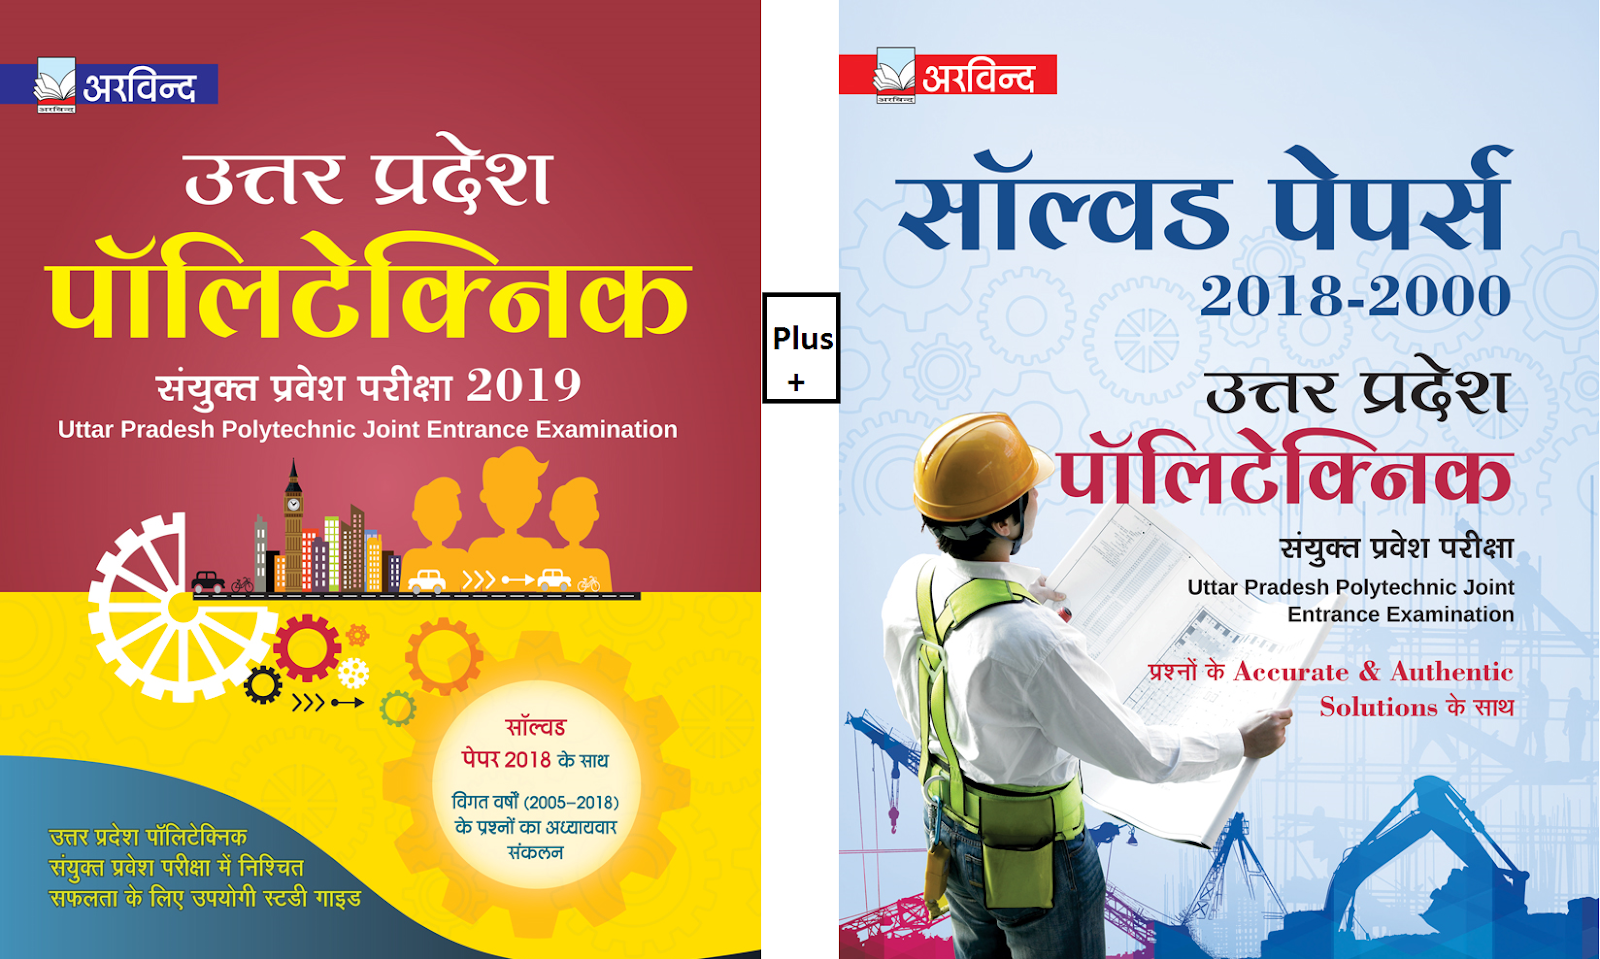 Uttar Pradesh Polytechnic Joint Entrance Exam 2019 - Combo of 2 Books : Best for preparation